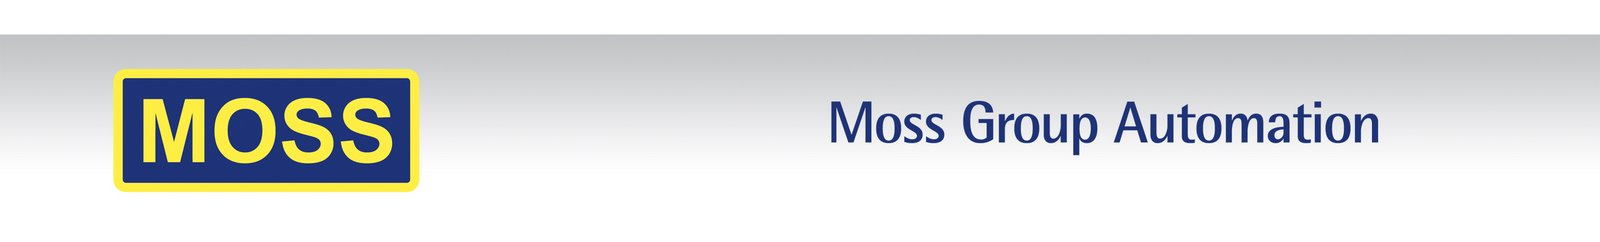 Moss Group Machine Tool Systems and Automation